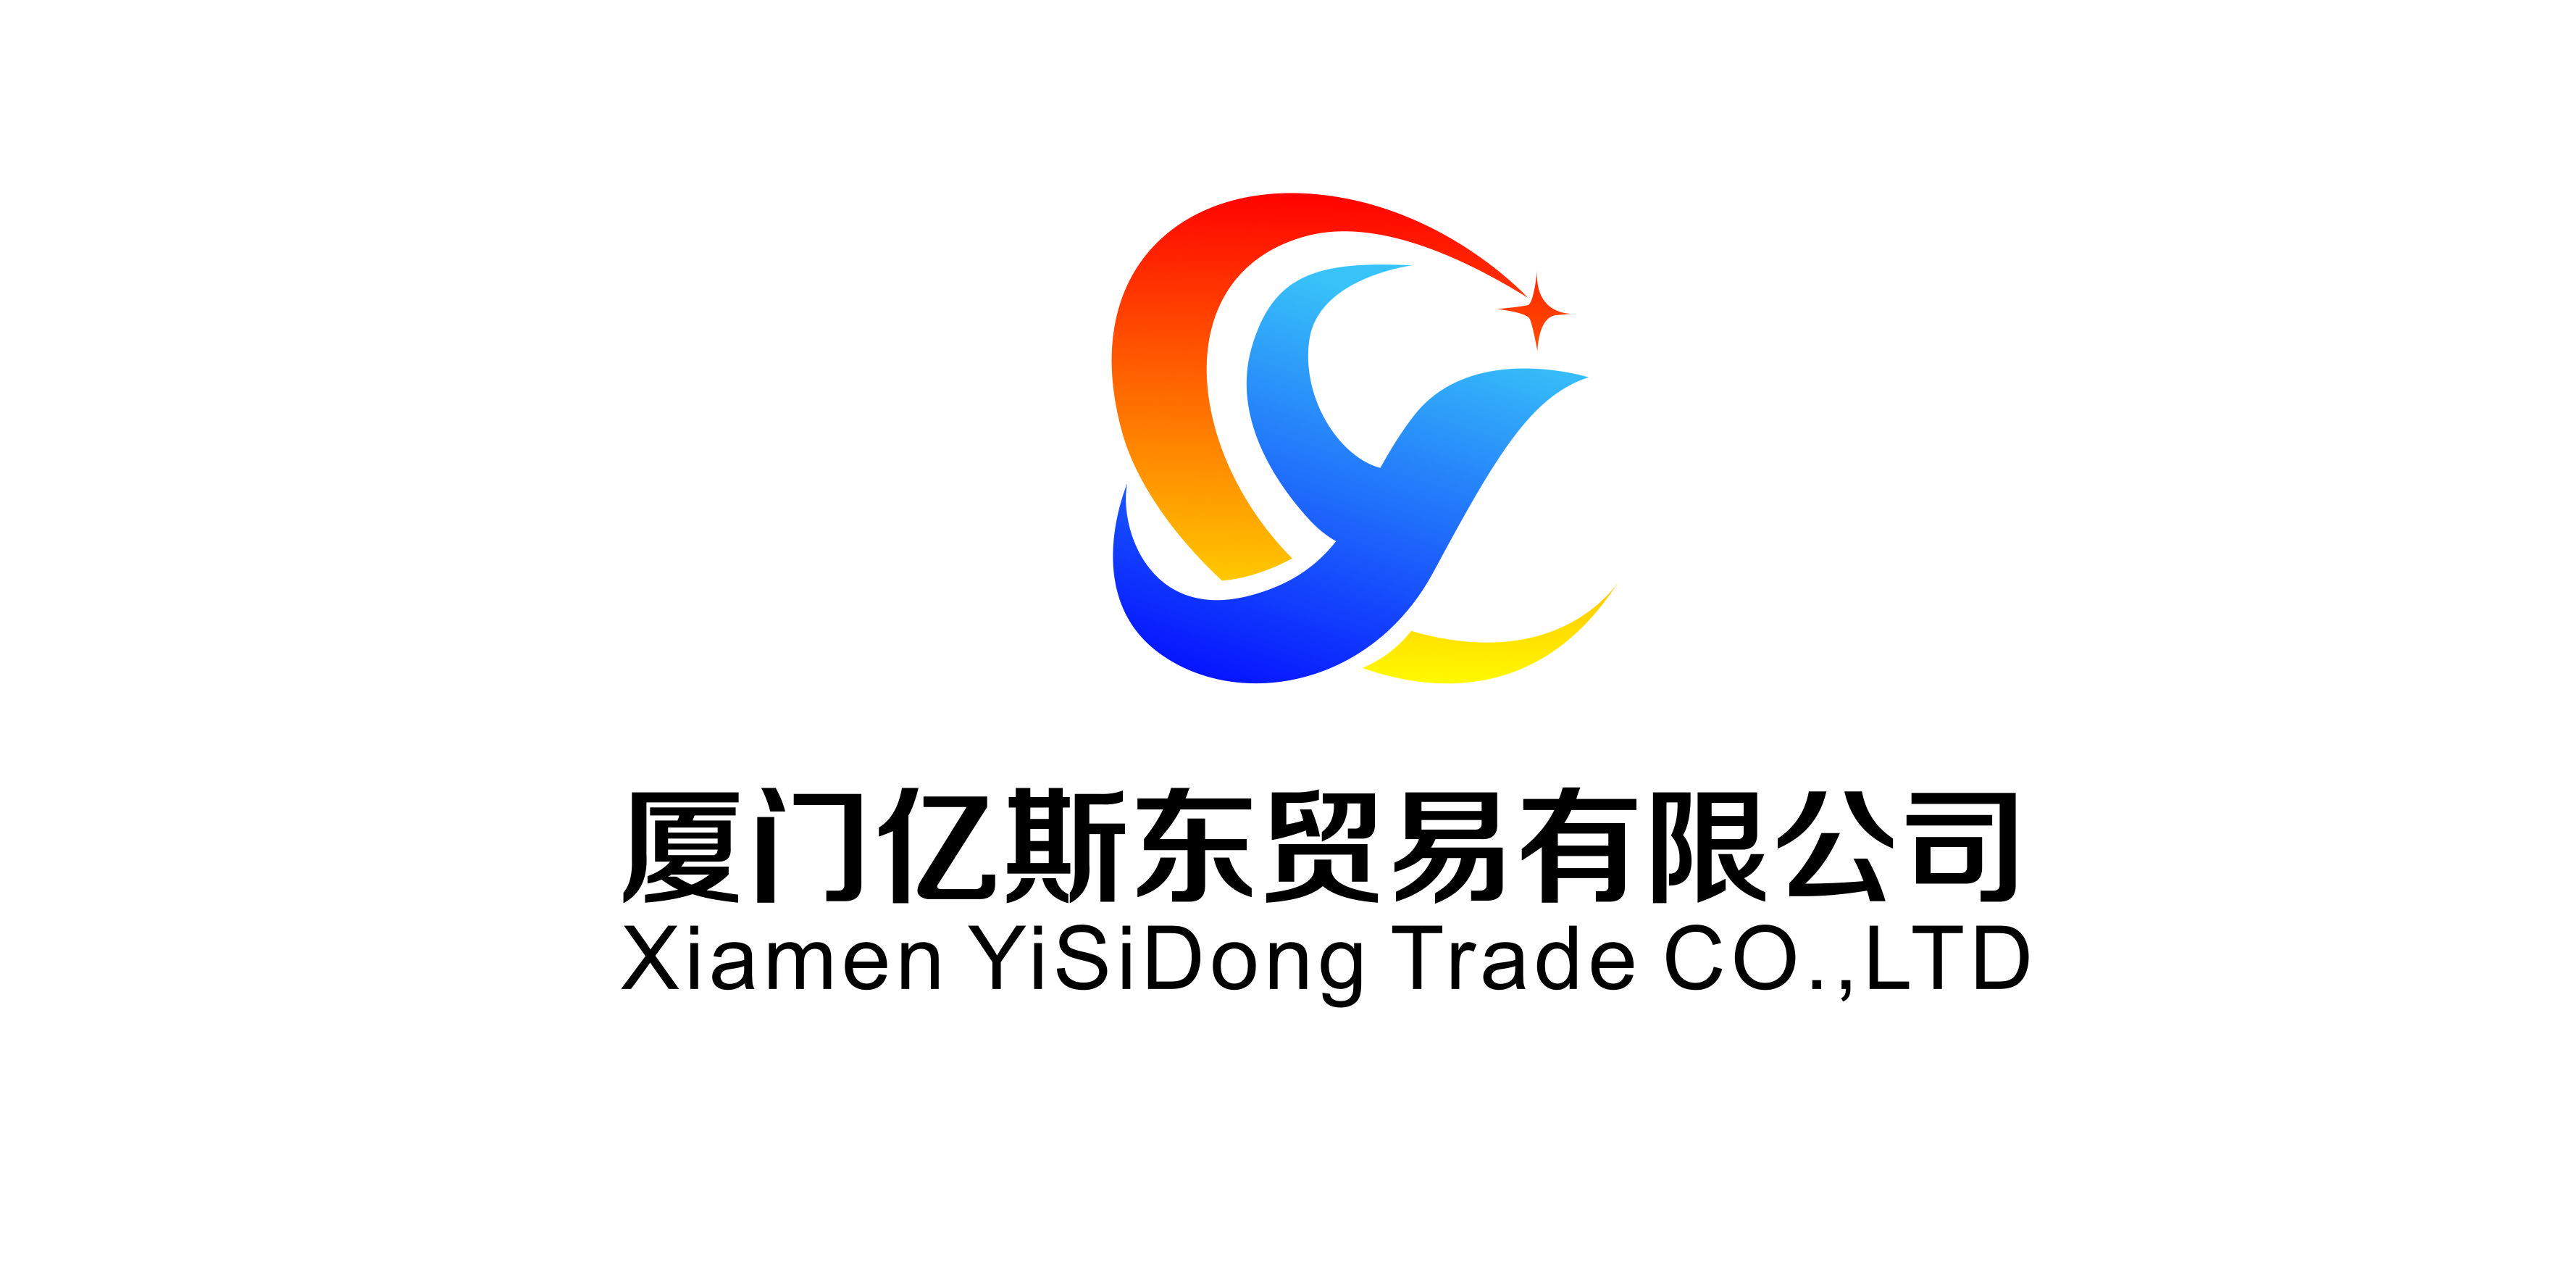 XIAMEN YISIDONG TRADE CO., LTD